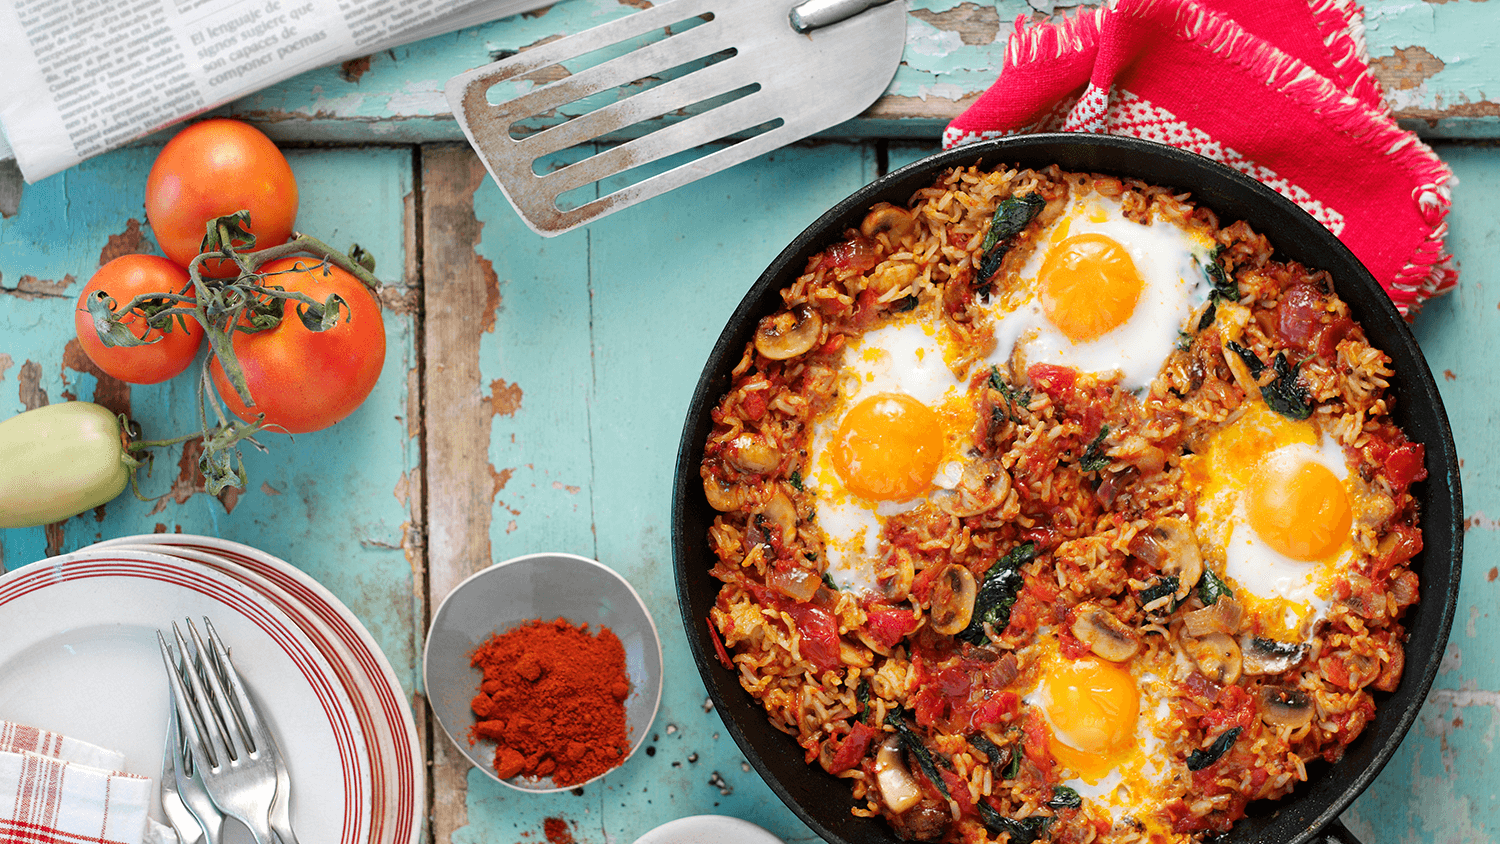 Spicy Tomato & Egg Brunch